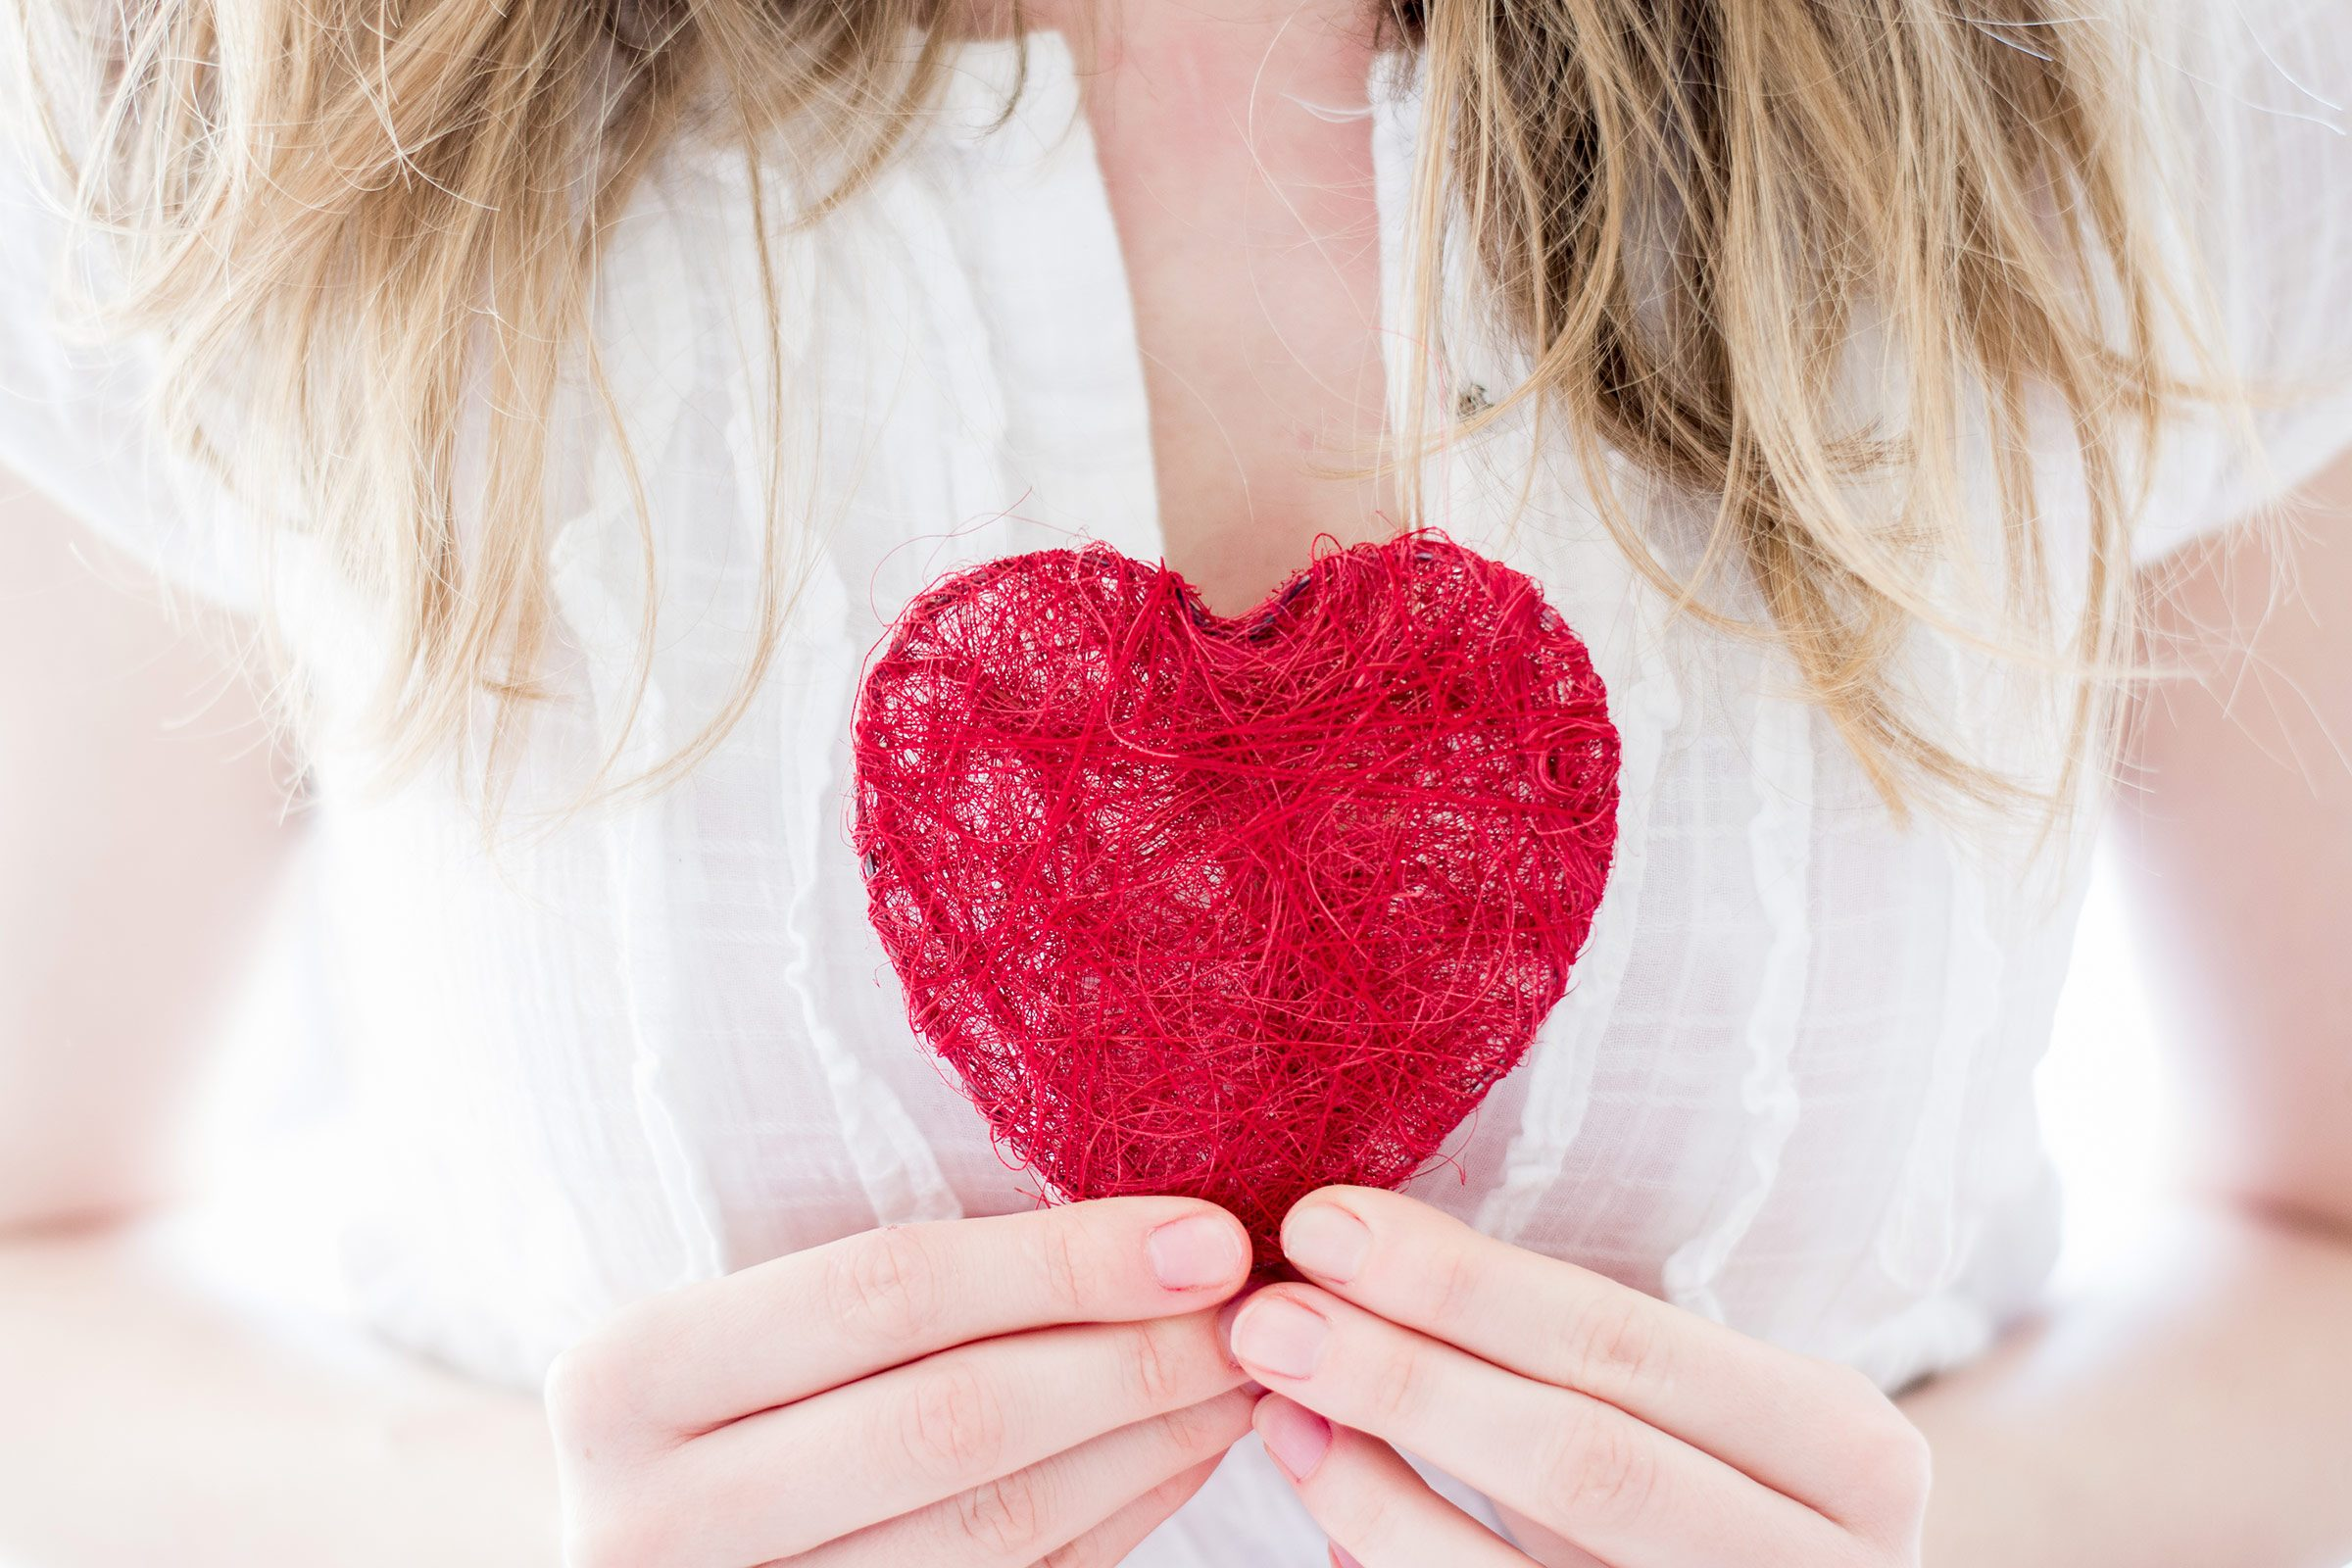 Benefits of CoQ10: How Coenzyme Q10 Can Keep Your Heart Healthy